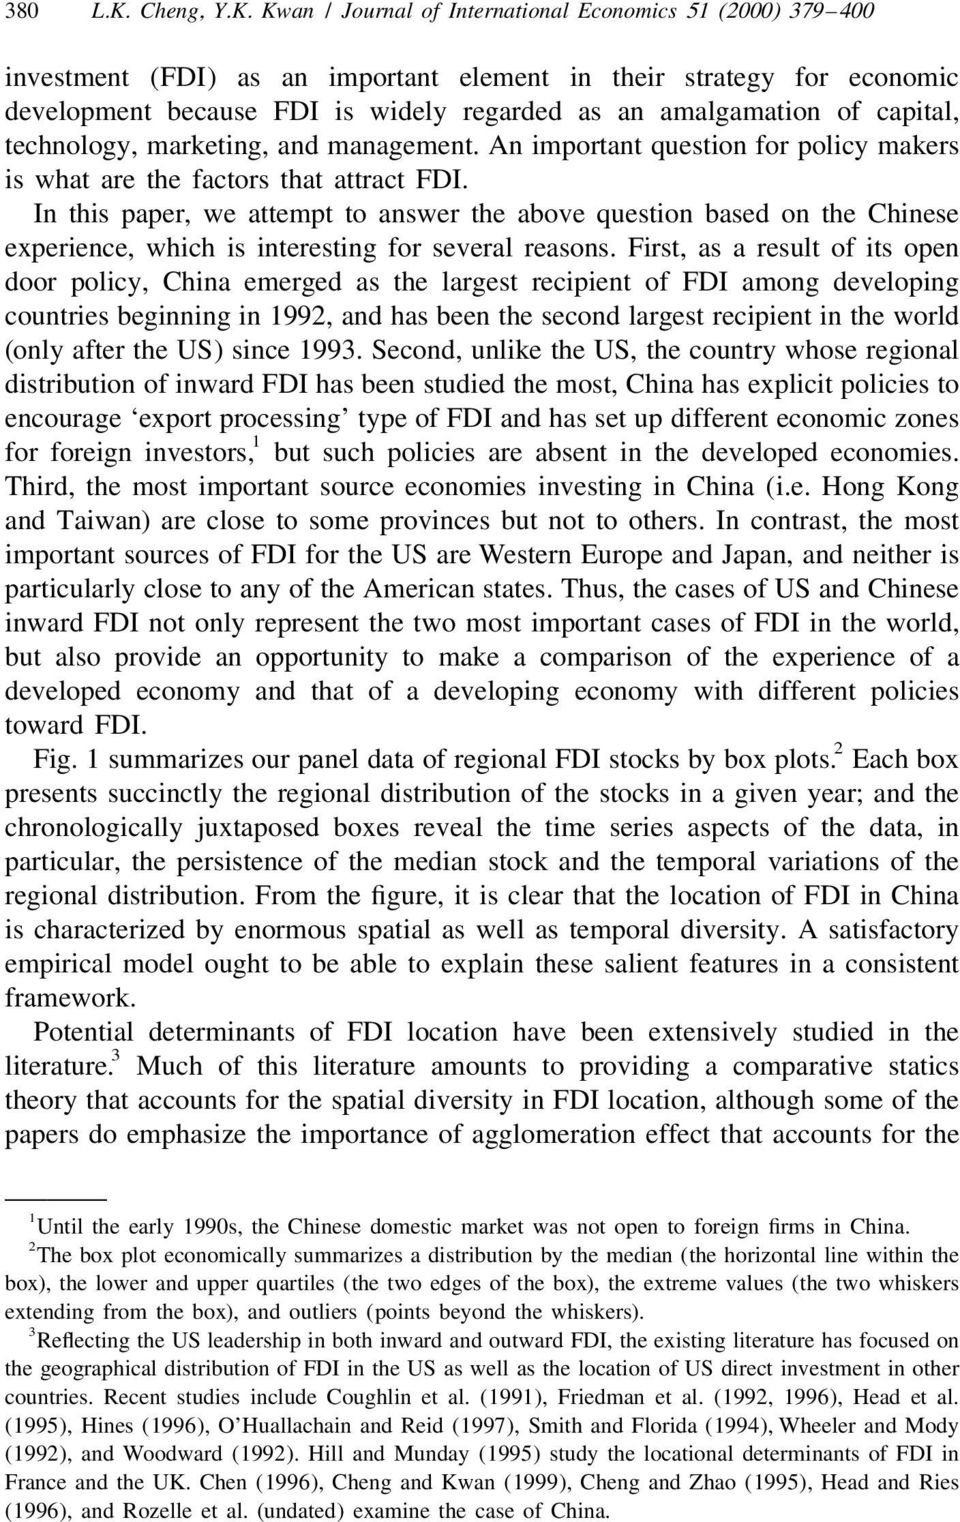 Kwan / Journal of International Economics 51 (2000) 379 400 investment (FDI) as an important element in their strategy for economic development because FDI is widely regarded as an amalgamation of